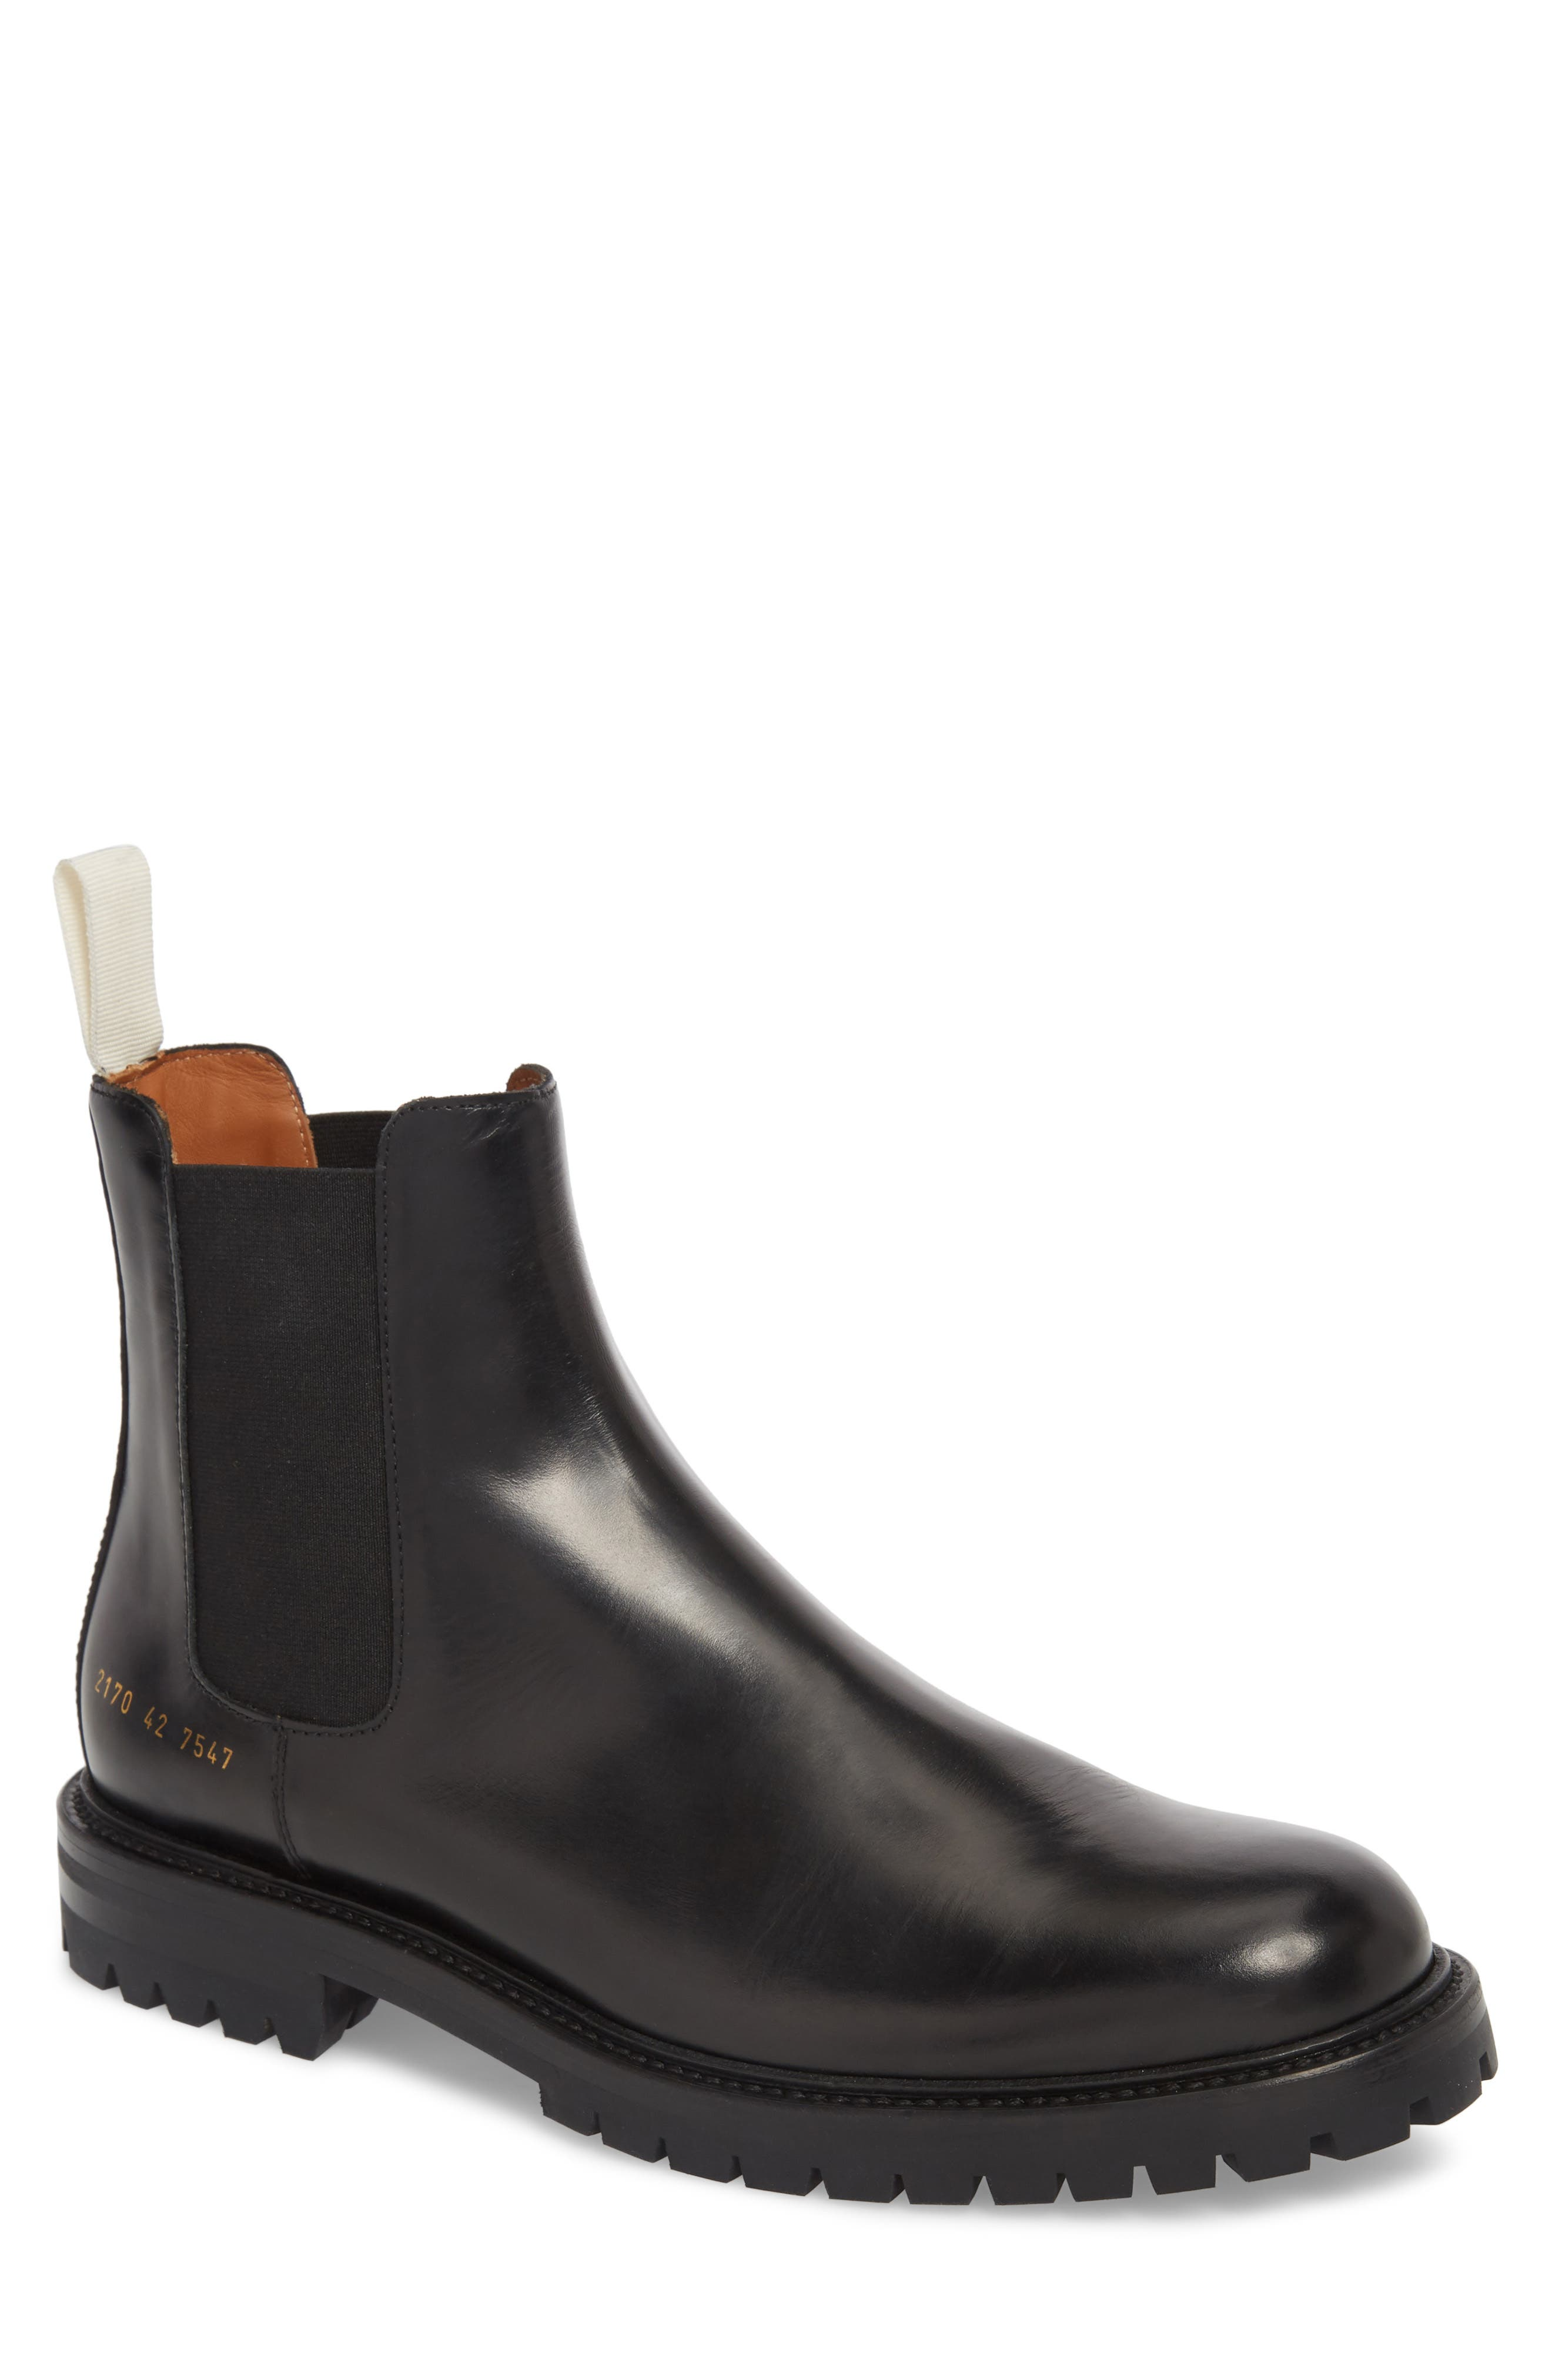 COMMON PROJECTS,                             Lugged Chelsea Boot,                             Main thumbnail 1, color,                             001